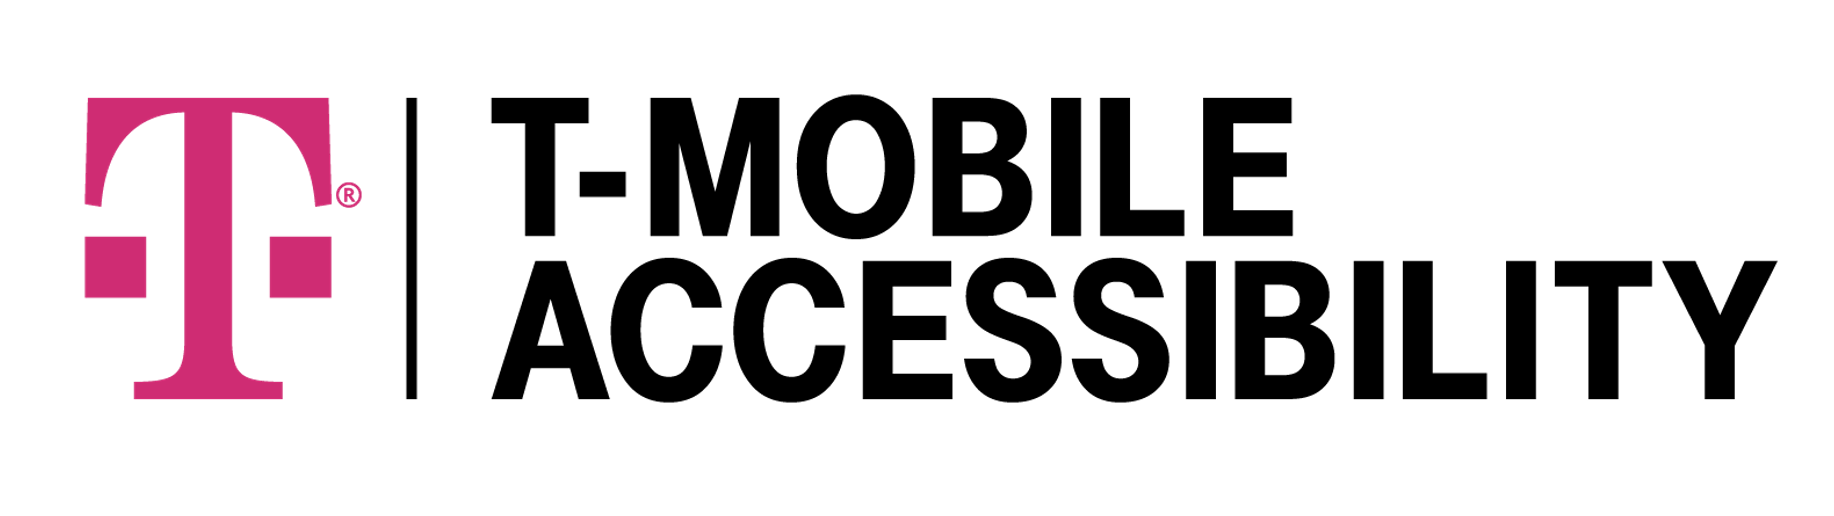 T-Mobile Accessibility